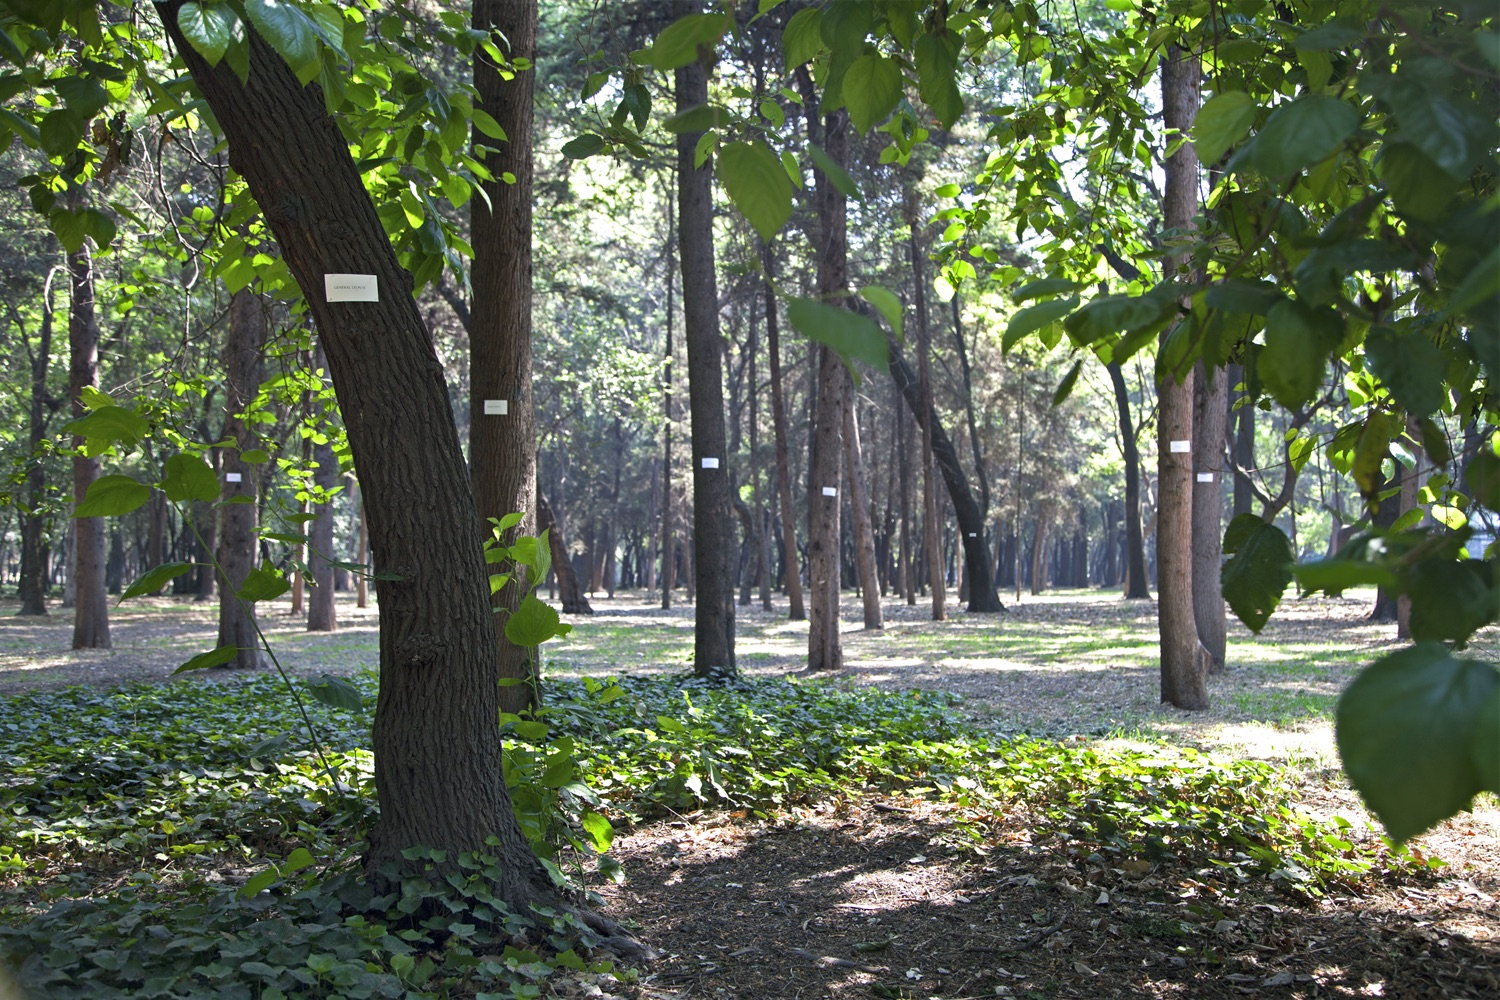 Bosque 9 copia.jpg